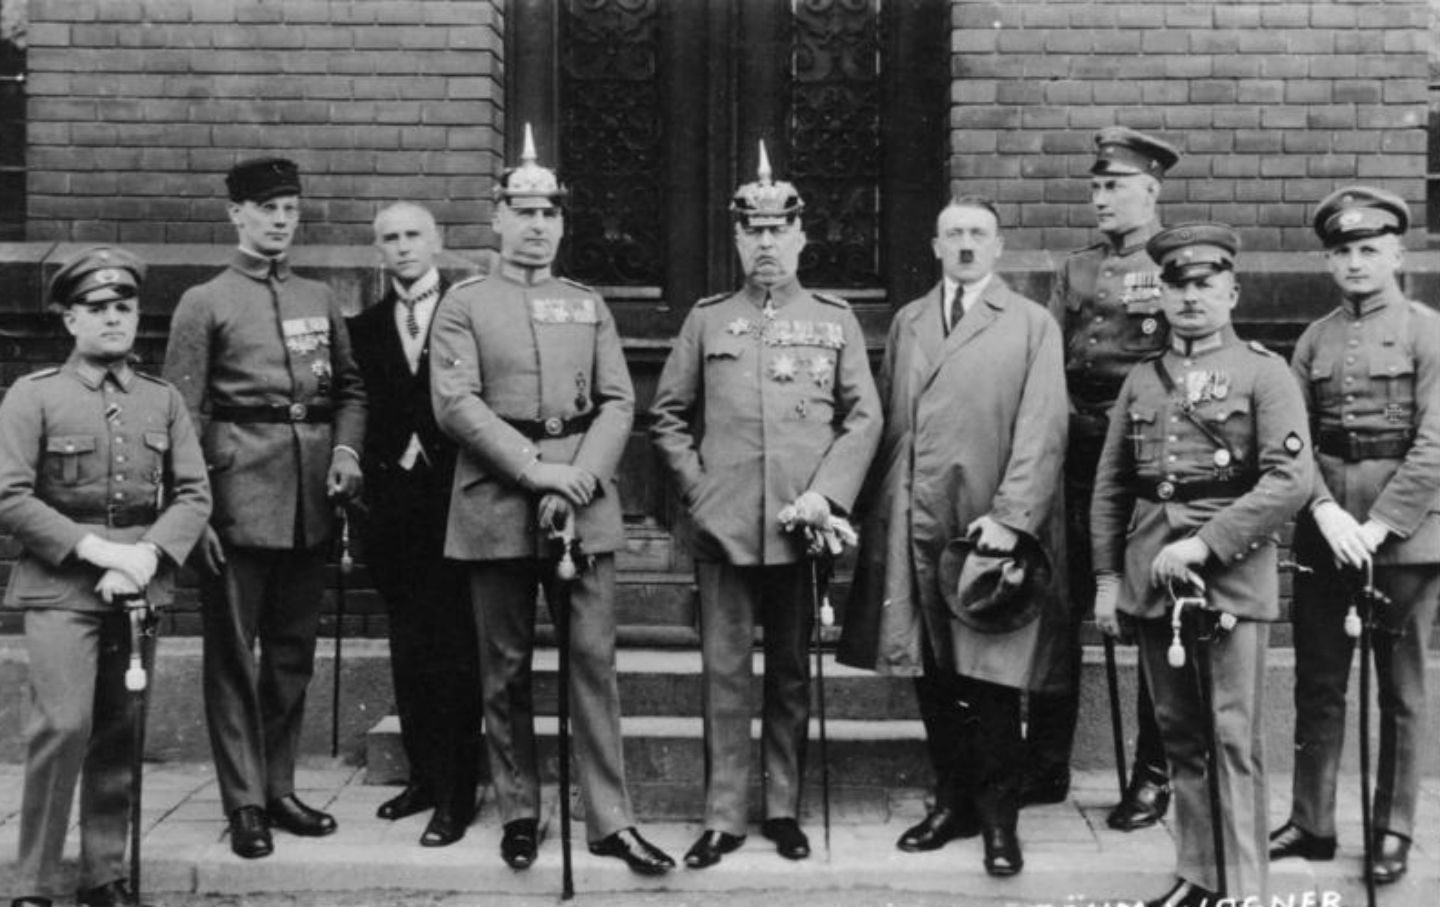 https://www.thenation.com/article/archive/november-8-1923-adolf-hitler-attempts-a-coup-in-germany-the-beer-hall-putsch/